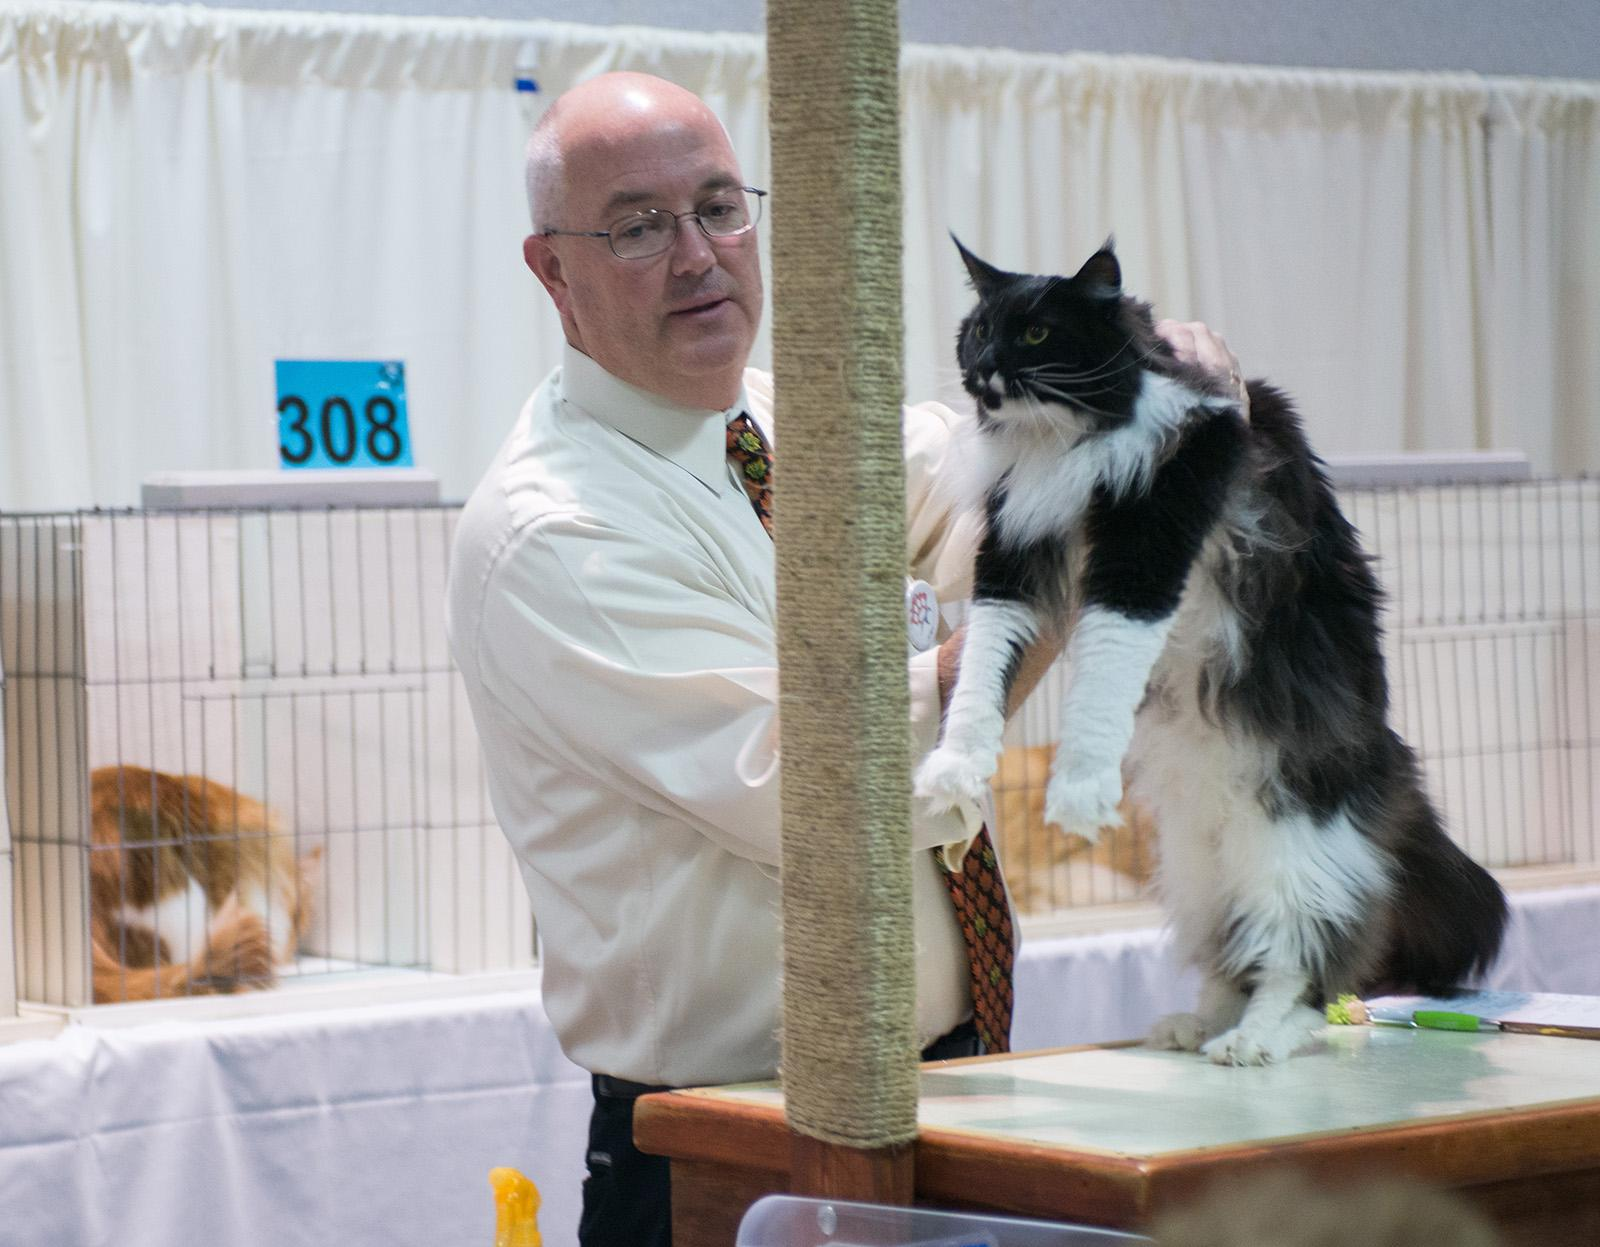 Felines representing dozens of breeds and countries are competing this weekend to take home the honors of top cat at The International Cat Show Portland. The volunteer-run show also serves as a food drive and fundraiser for the Oregon Food Bank. Admission is $6 with two cans of food or $8 without, children under 12 years old are free. (KATU photo by Tristan Fortsch on Nov. 11, 2017)